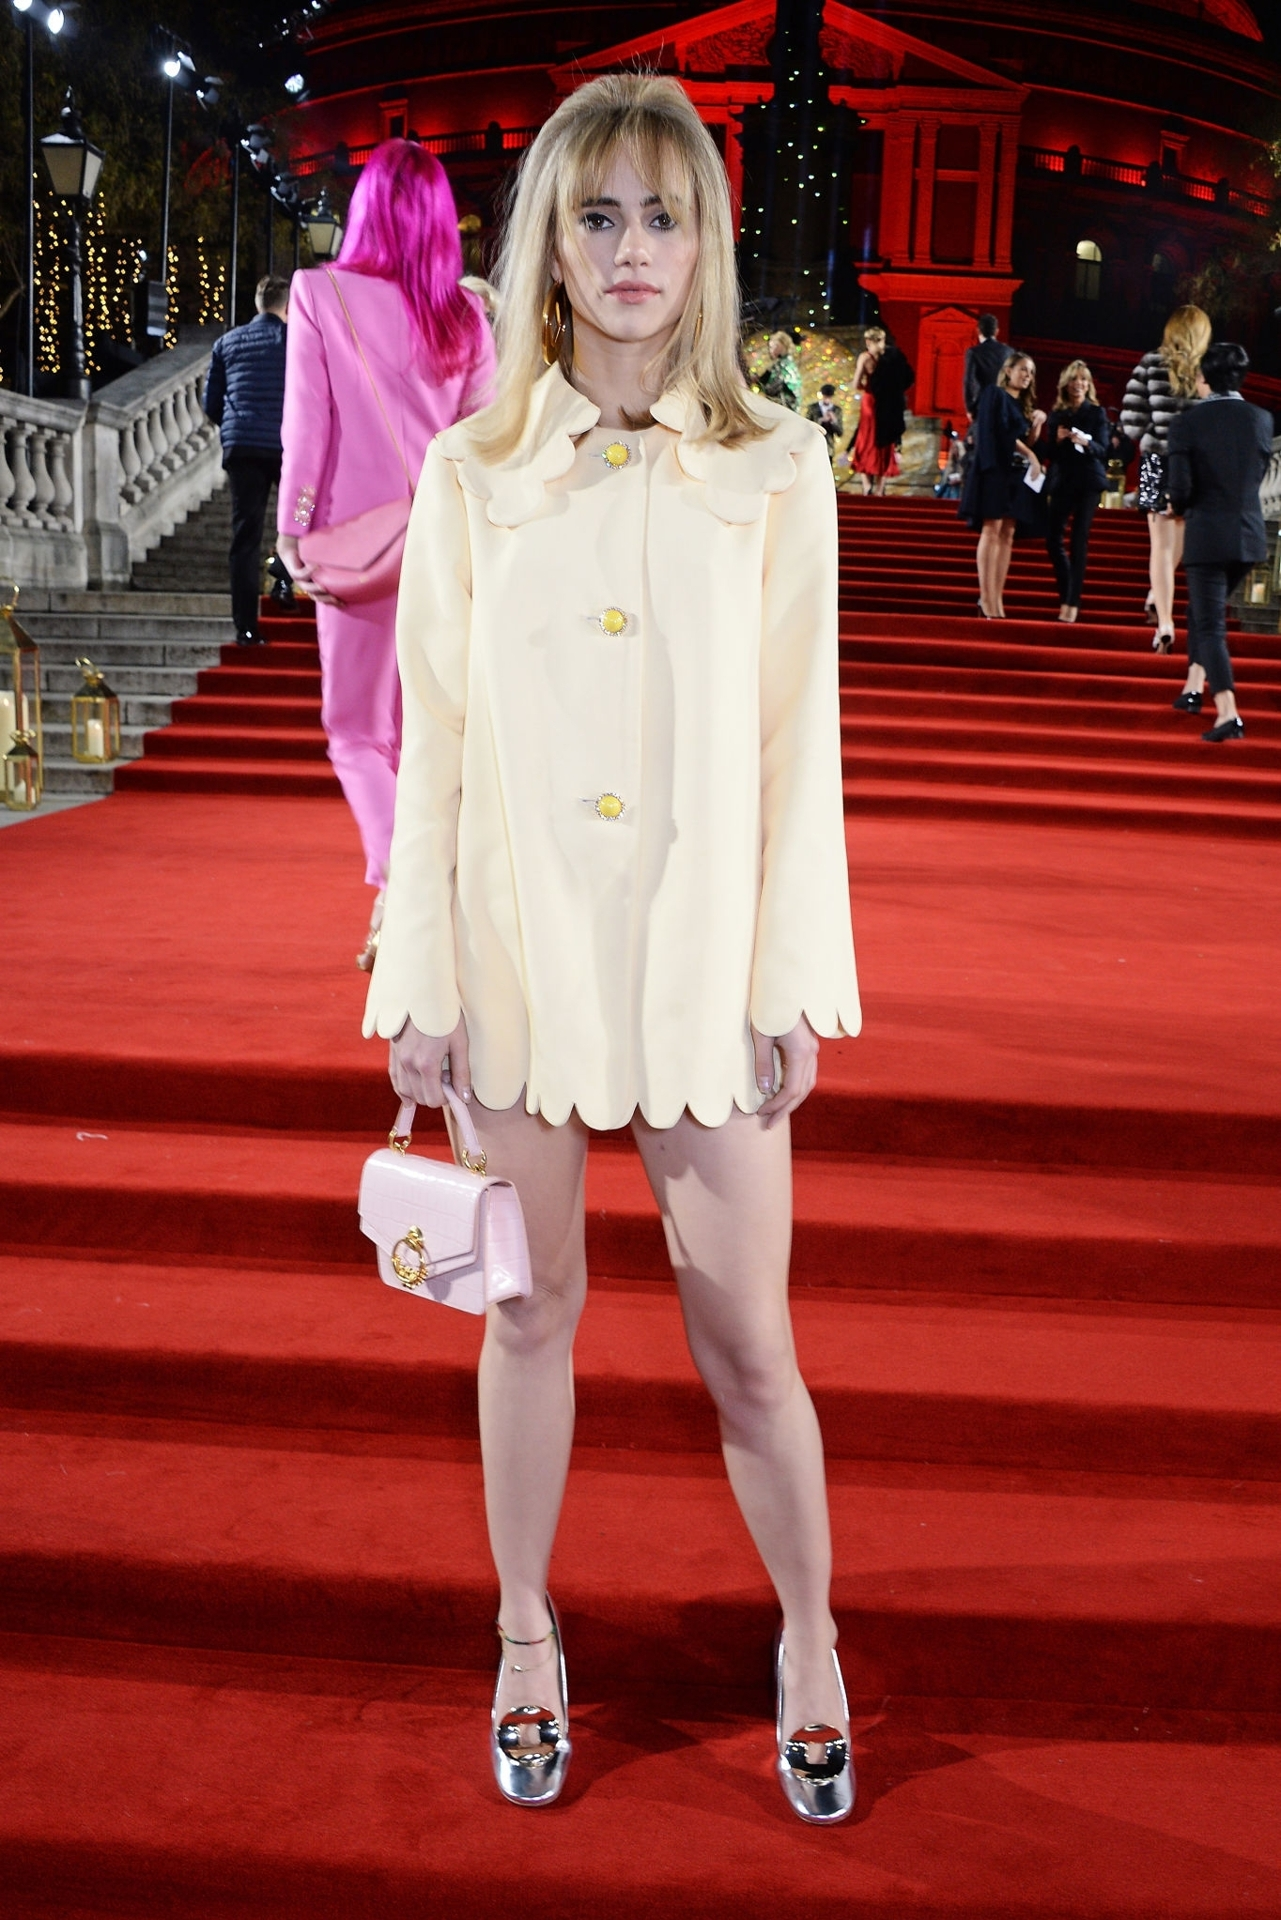 coat yellow coat suki waterhouse model off-duty red carpet celebrity